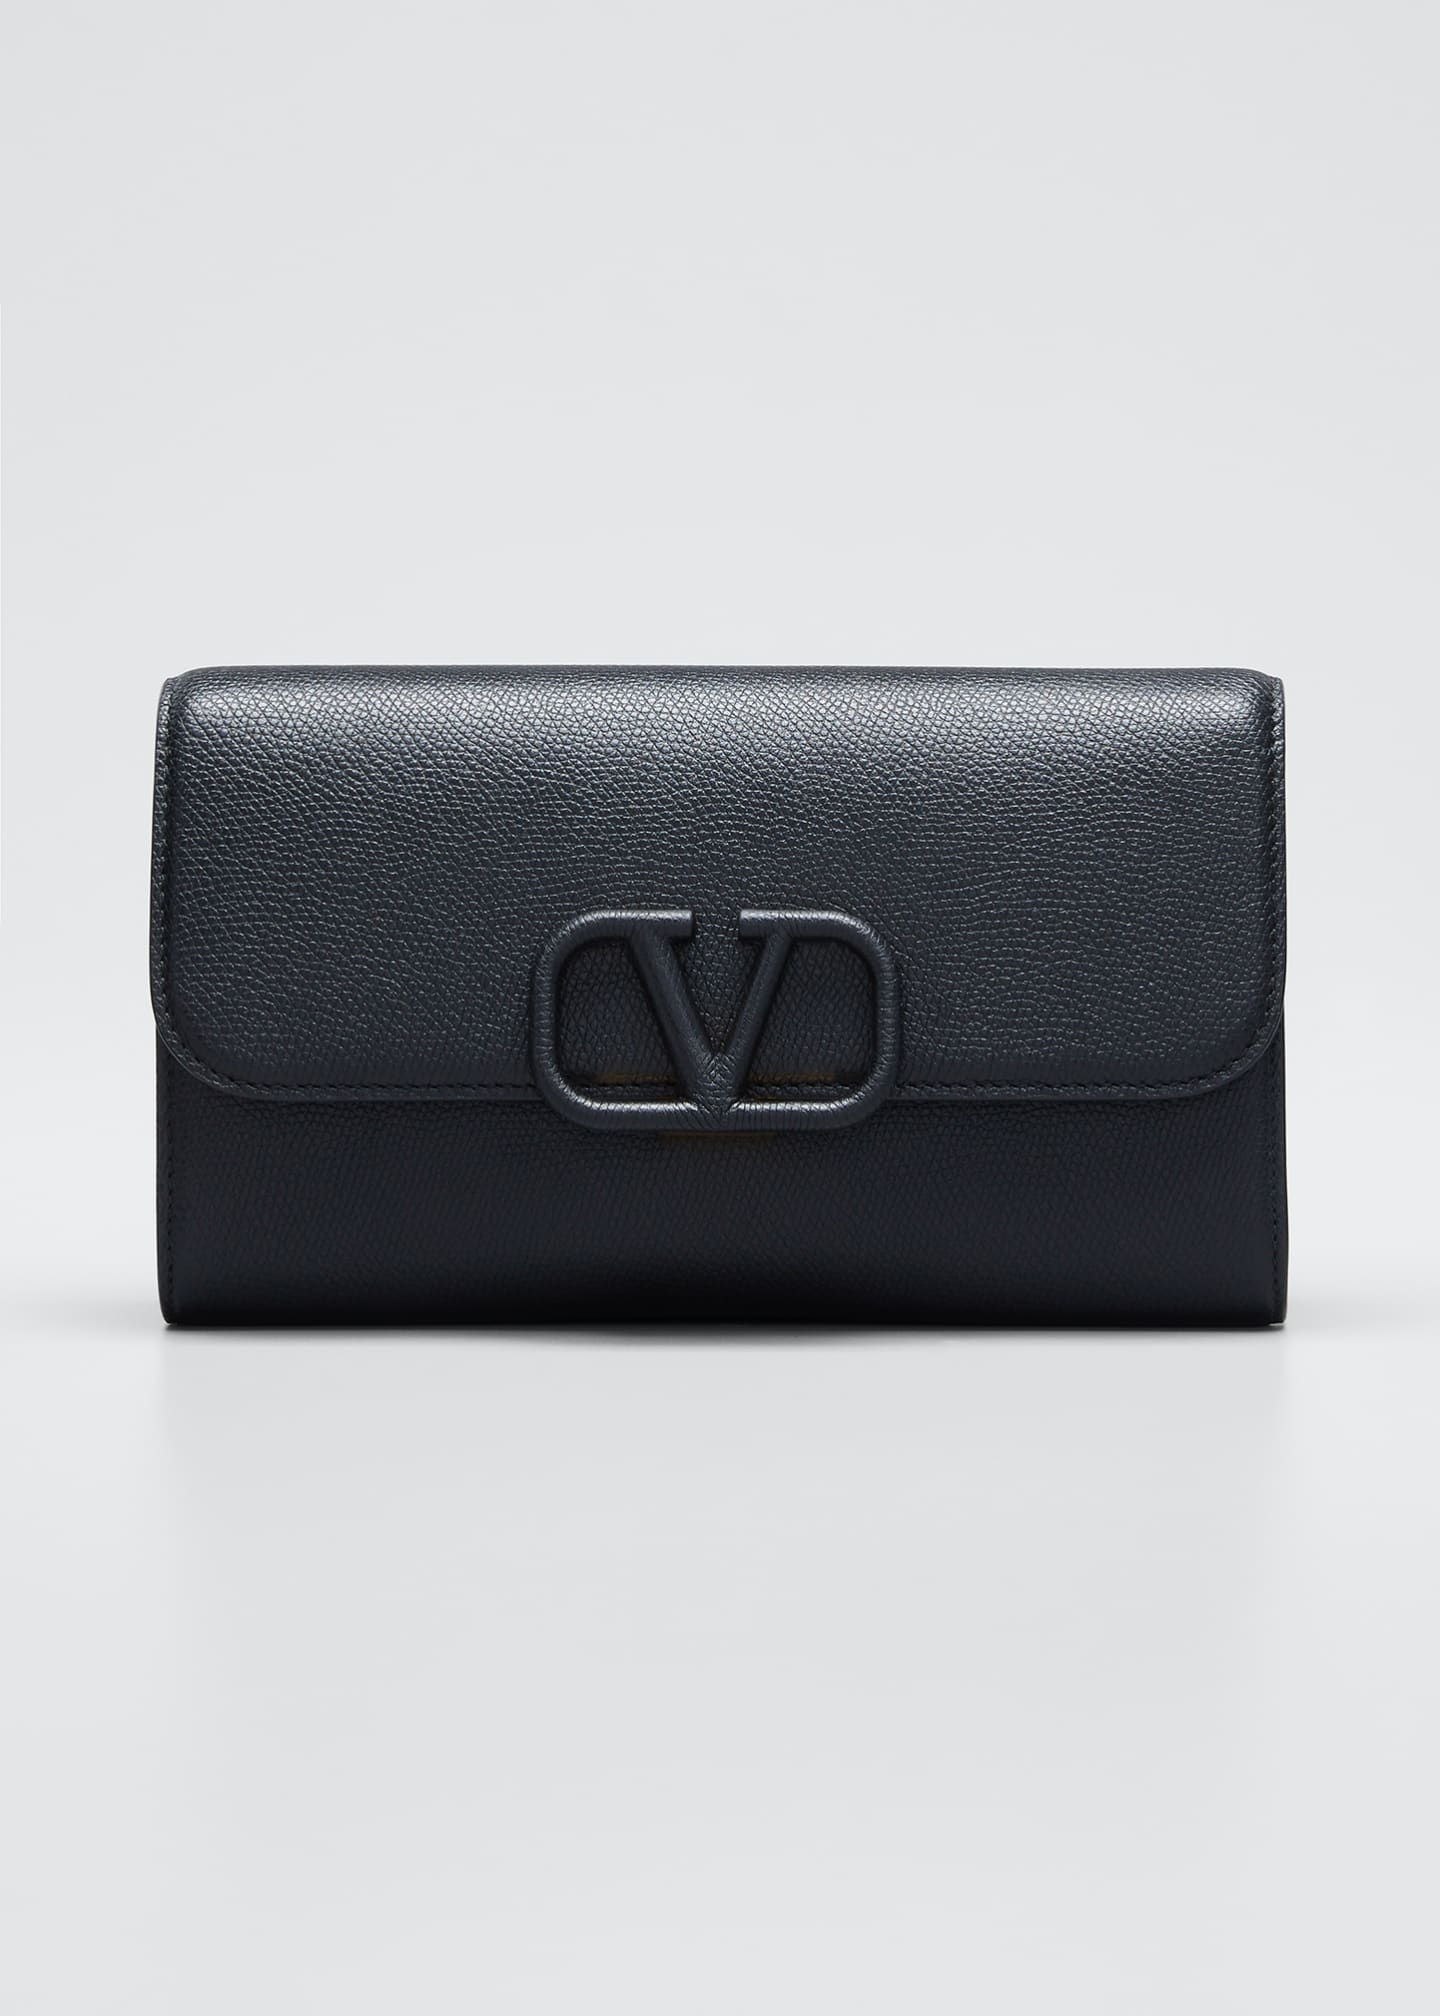 Image 1 of 5: VSLING Grained Calfskin Clutch Bag